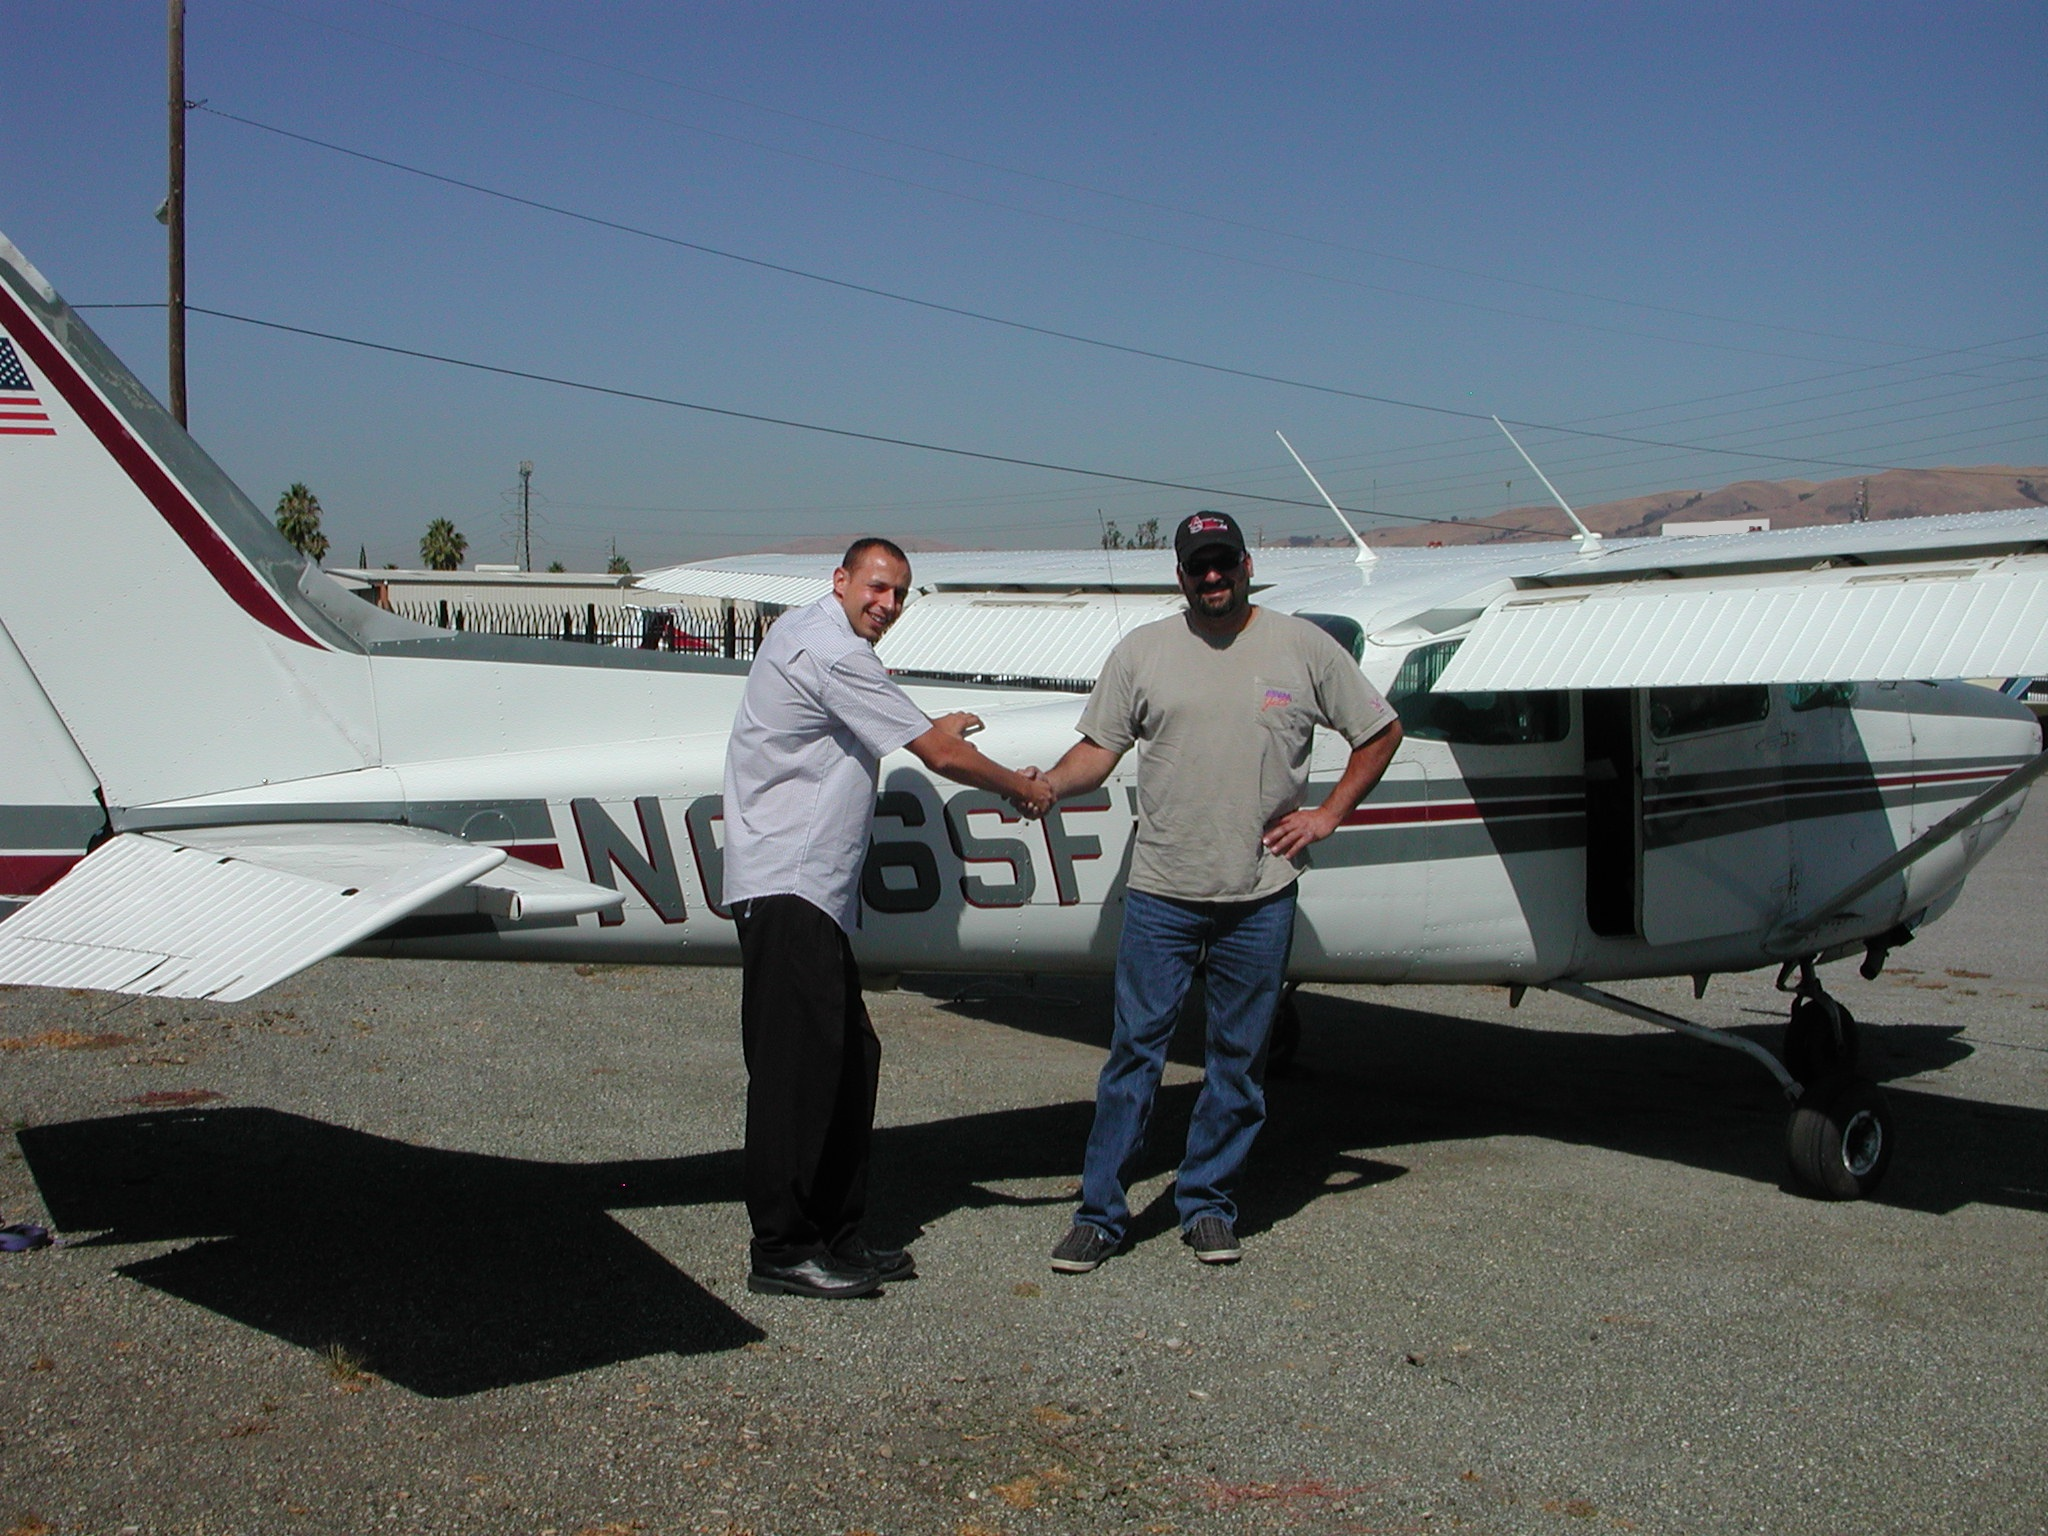 Dave Presta received complex endorsement at AeroDynamic Aviation located at Reid Hillview Airport in San Jose, CA.